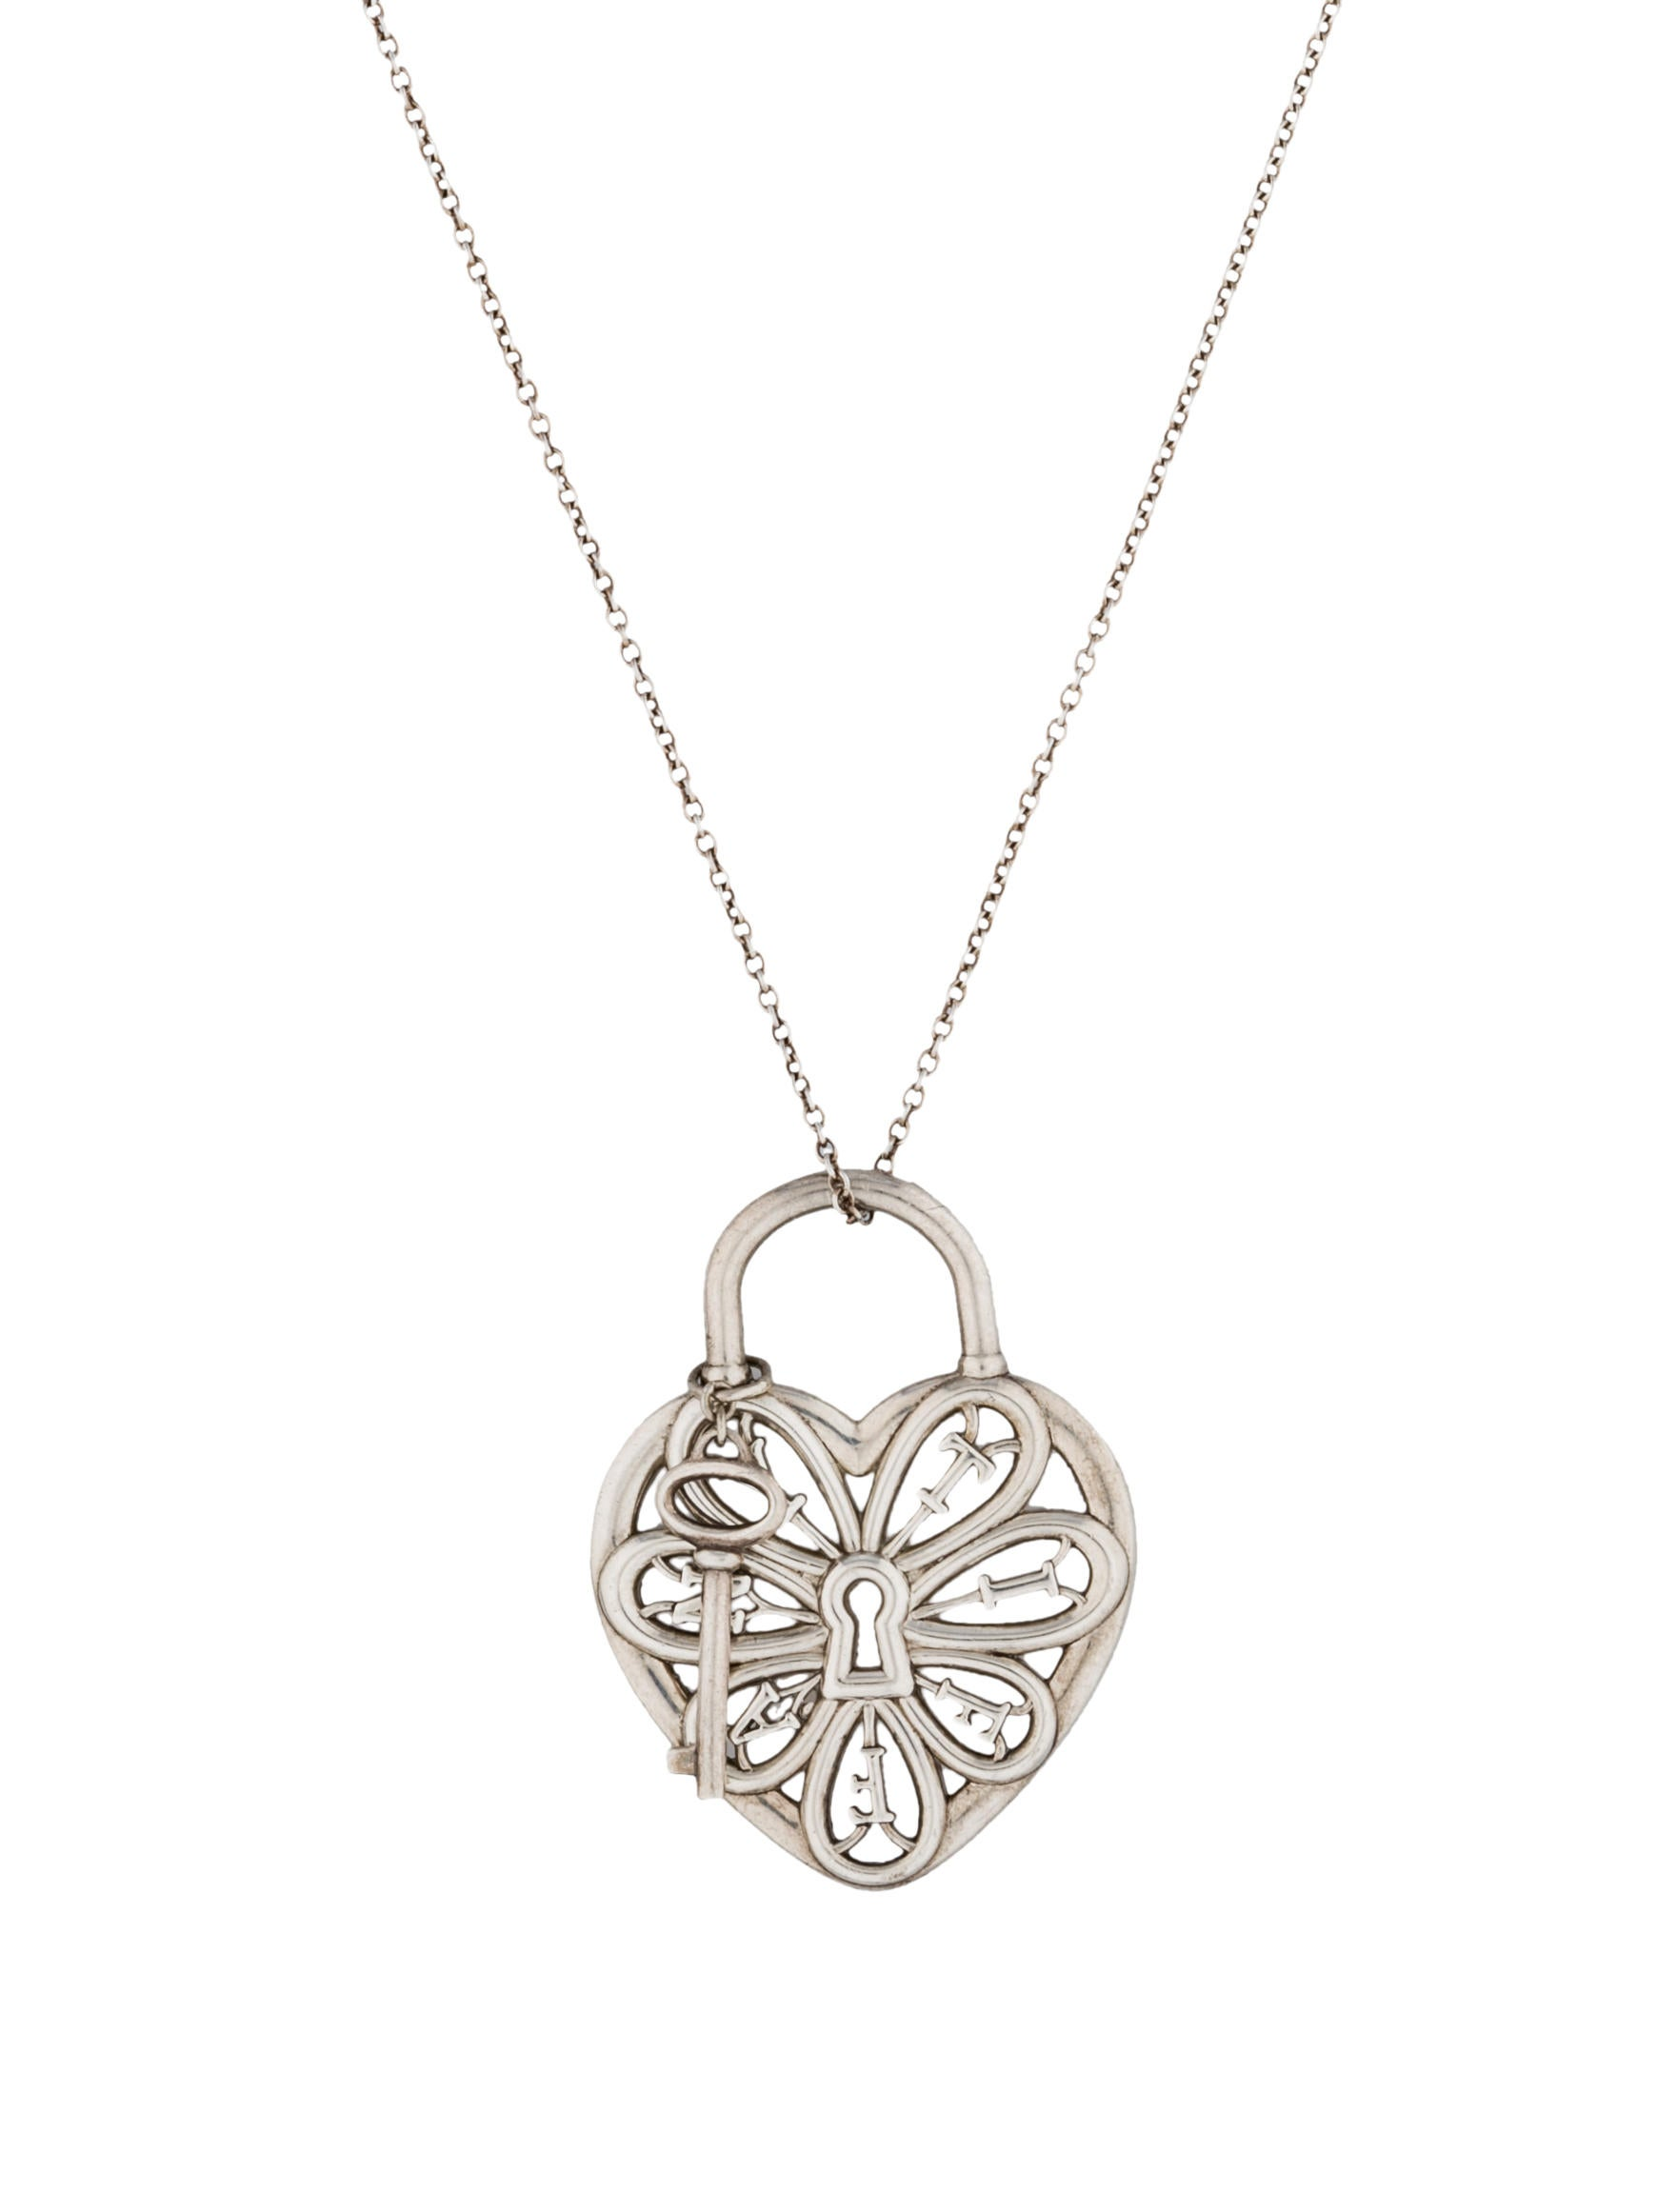 Beautiful tiffany filigree heart necklace with key jewellrys website tiffany co filigree heart pendant necklace necklaces aloadofball Images